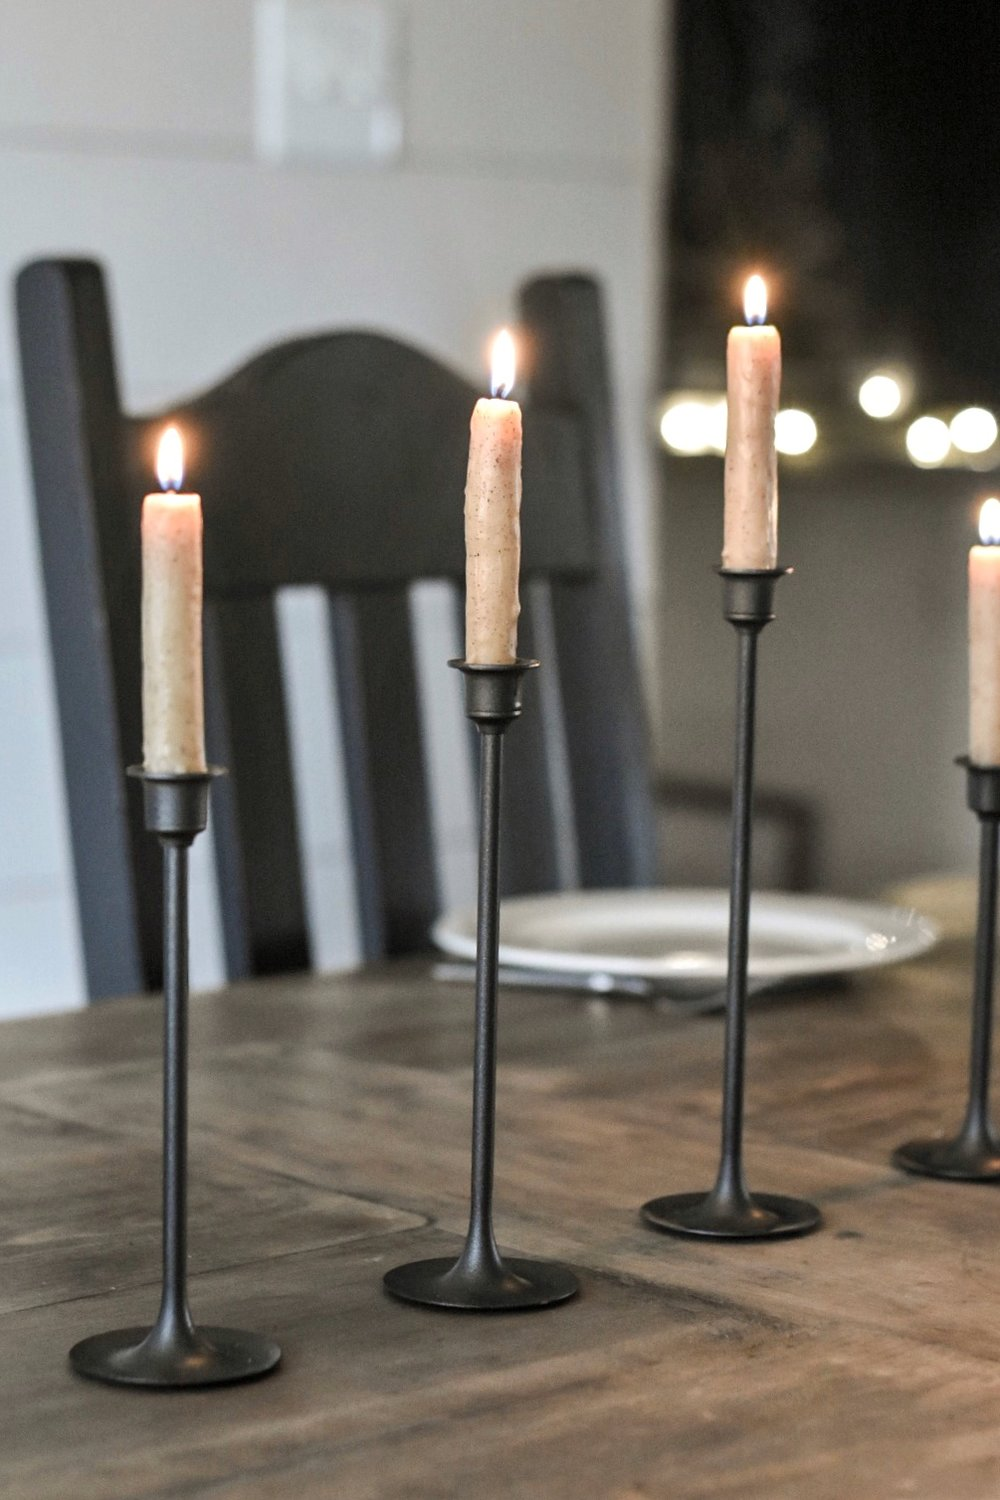 DIY Brass Candle Makeover thrift store makeover | upcycled candlesticks | how to spray paint candlesticks | thrift store candlesticks | black candlesticks - Rocky Hedge Farm